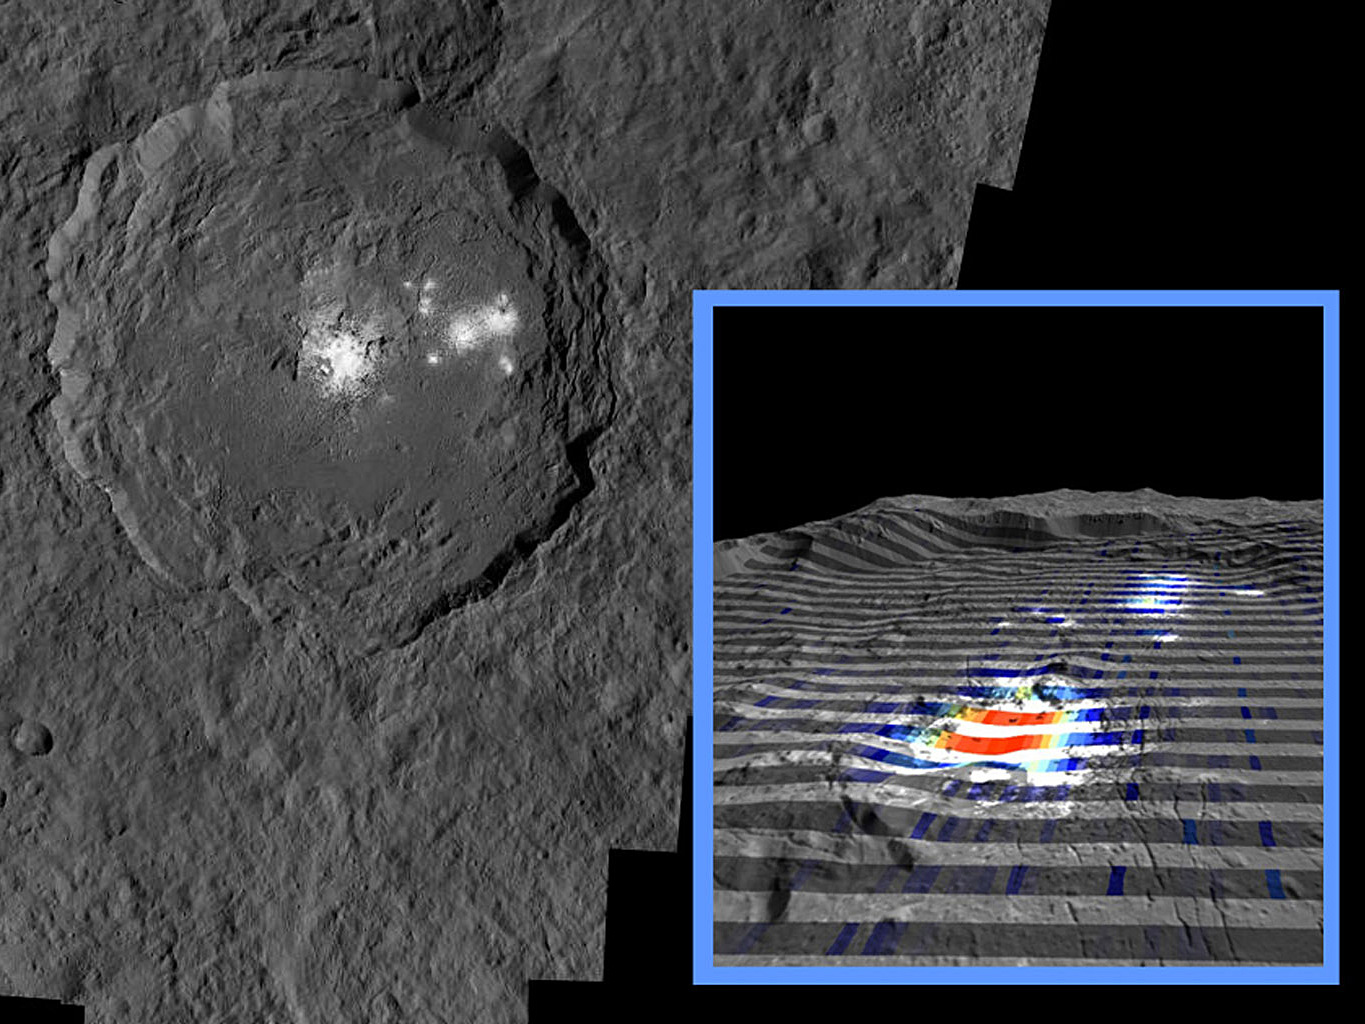 The centre of Ceres' mysterious 57-mile-wide Occator Crater is the brightest area on the dwarf planet. Image credit: NASA/JPL-Caltech/UCLA/MPS/DLR/IDA/ASI/INAF.